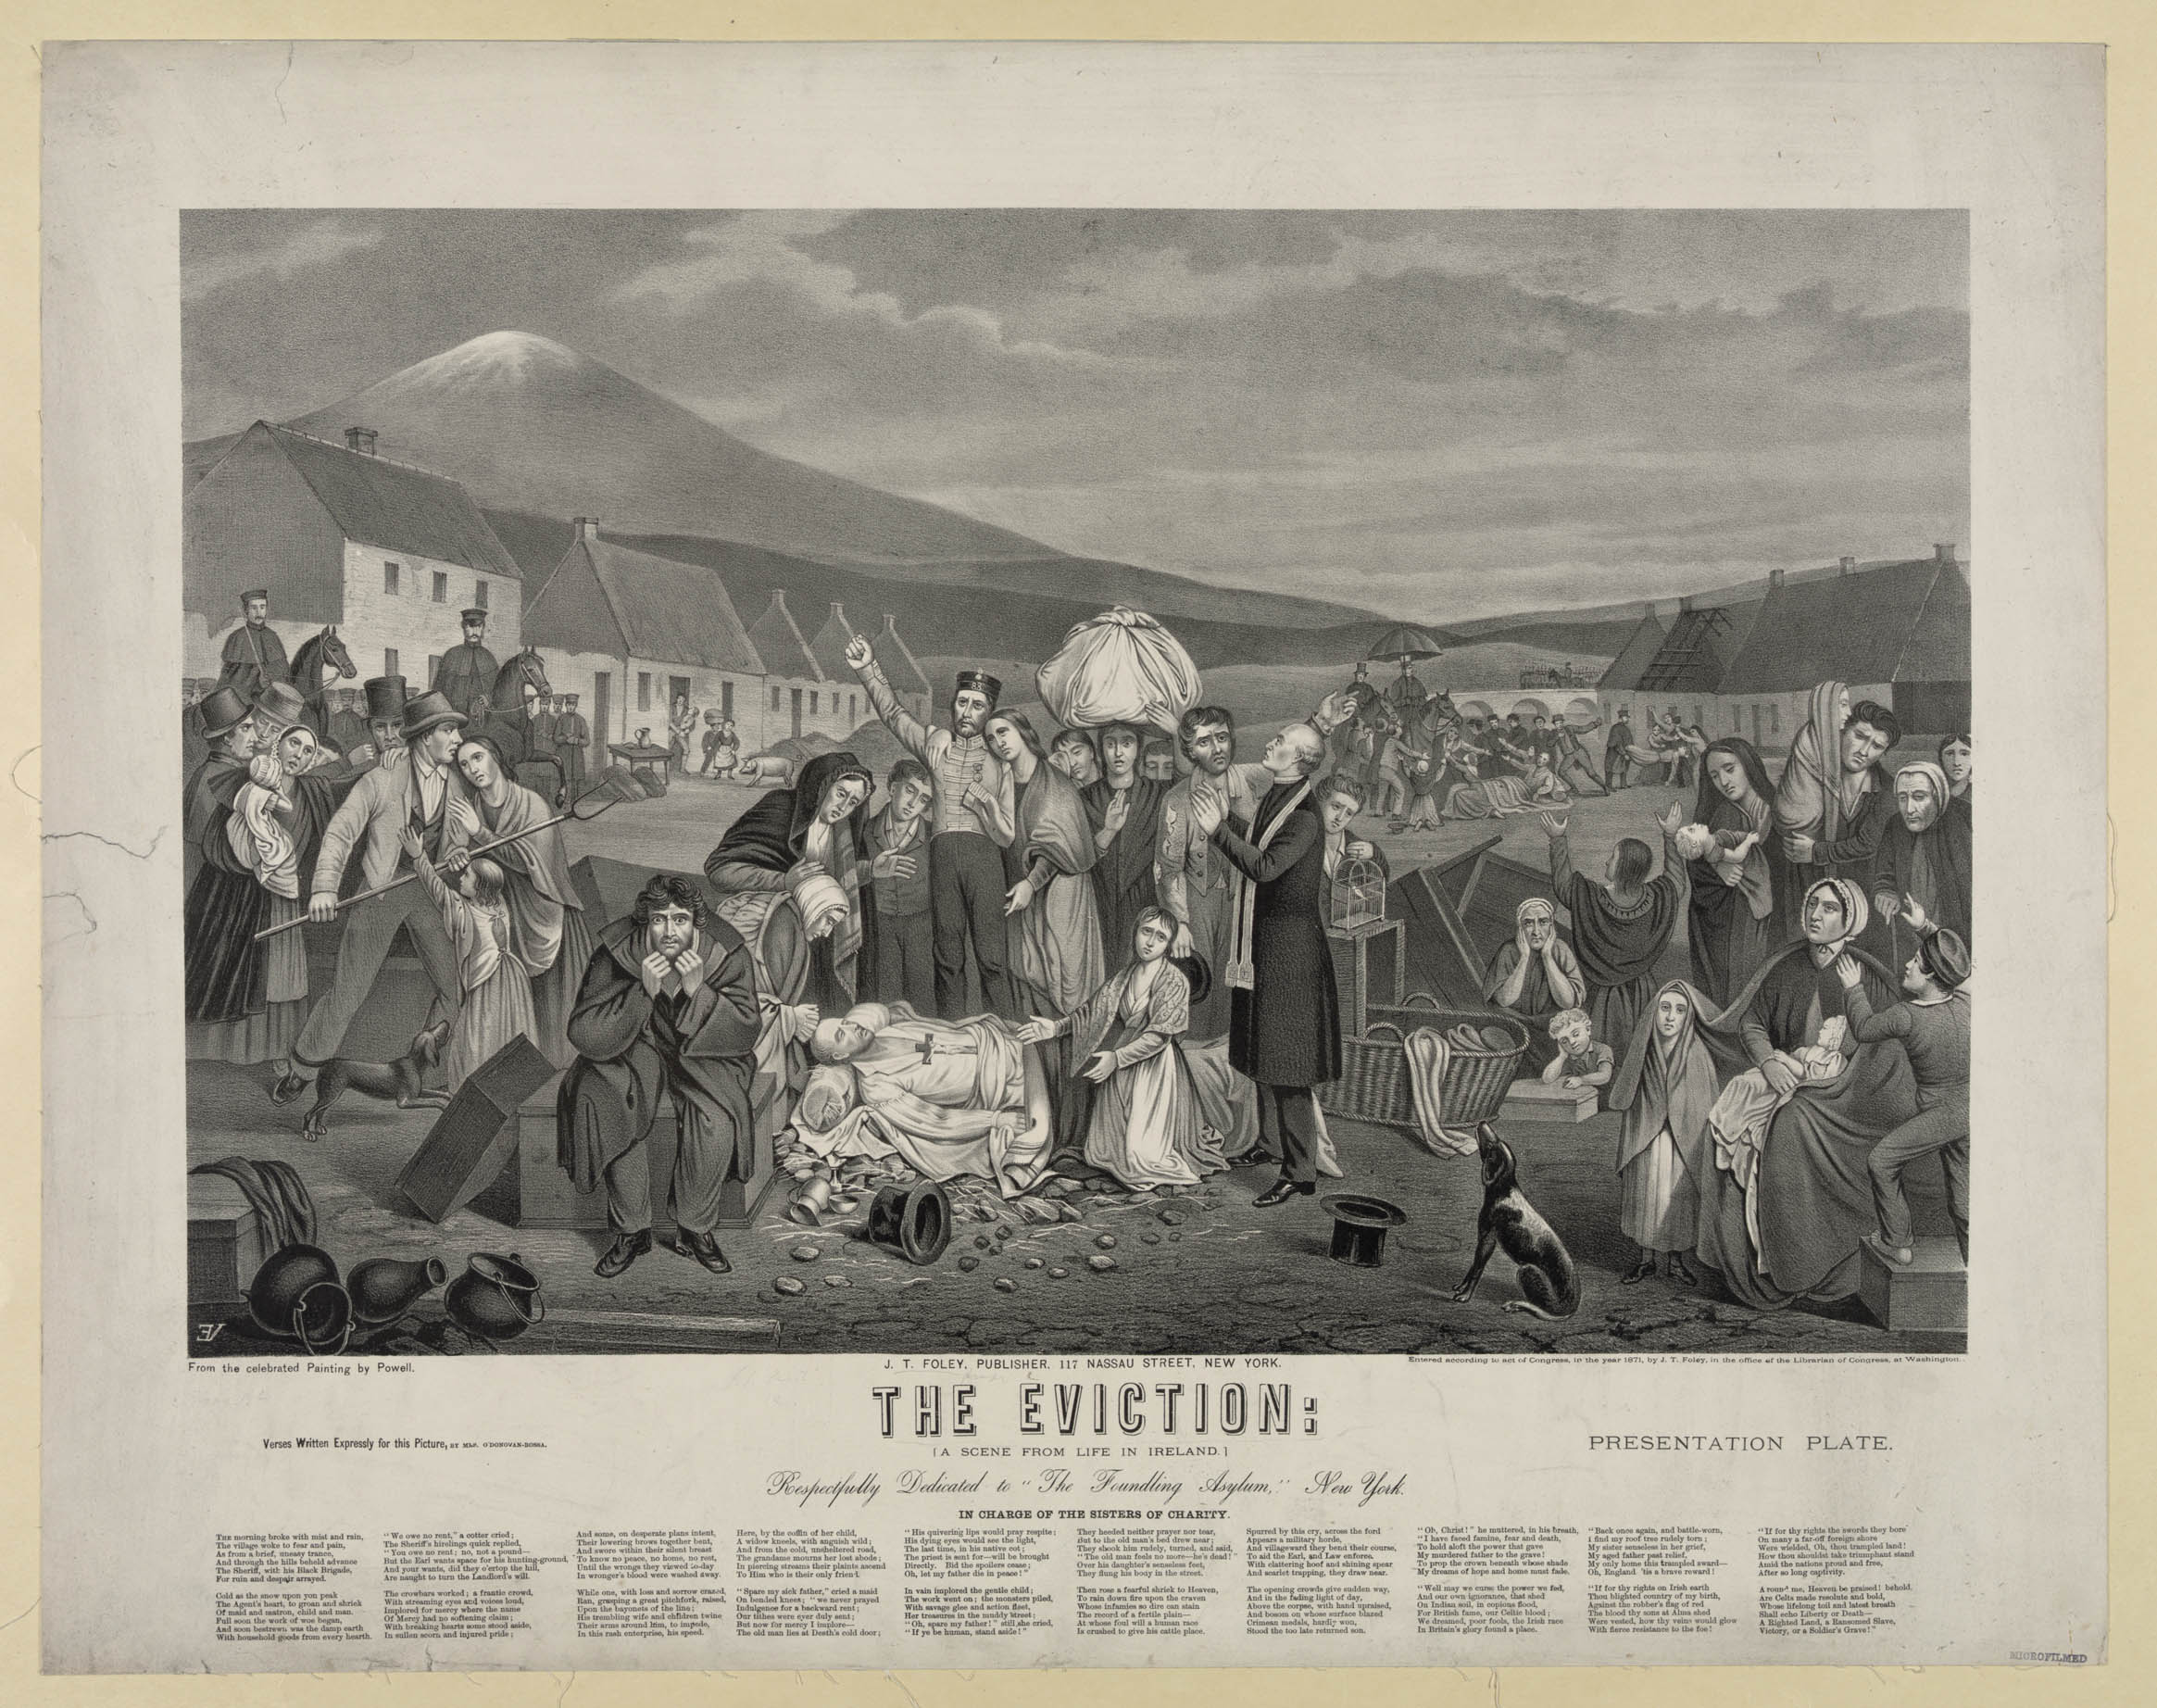 """The Eviction: A Scene from Life in Ireland,"" an 1871 Library of Congress presentation plate published by J.T. Foley after a painting by W.H. Powel. The scene shows clusters of tenants with their belongings after being forcibly evicted from their homes on land largely owned by British absentee landlords. The text at the bottom is an original poem commissioned for the plate by Mary Jane O'Donovan-Rossa. (Photo: Library of Congress)"